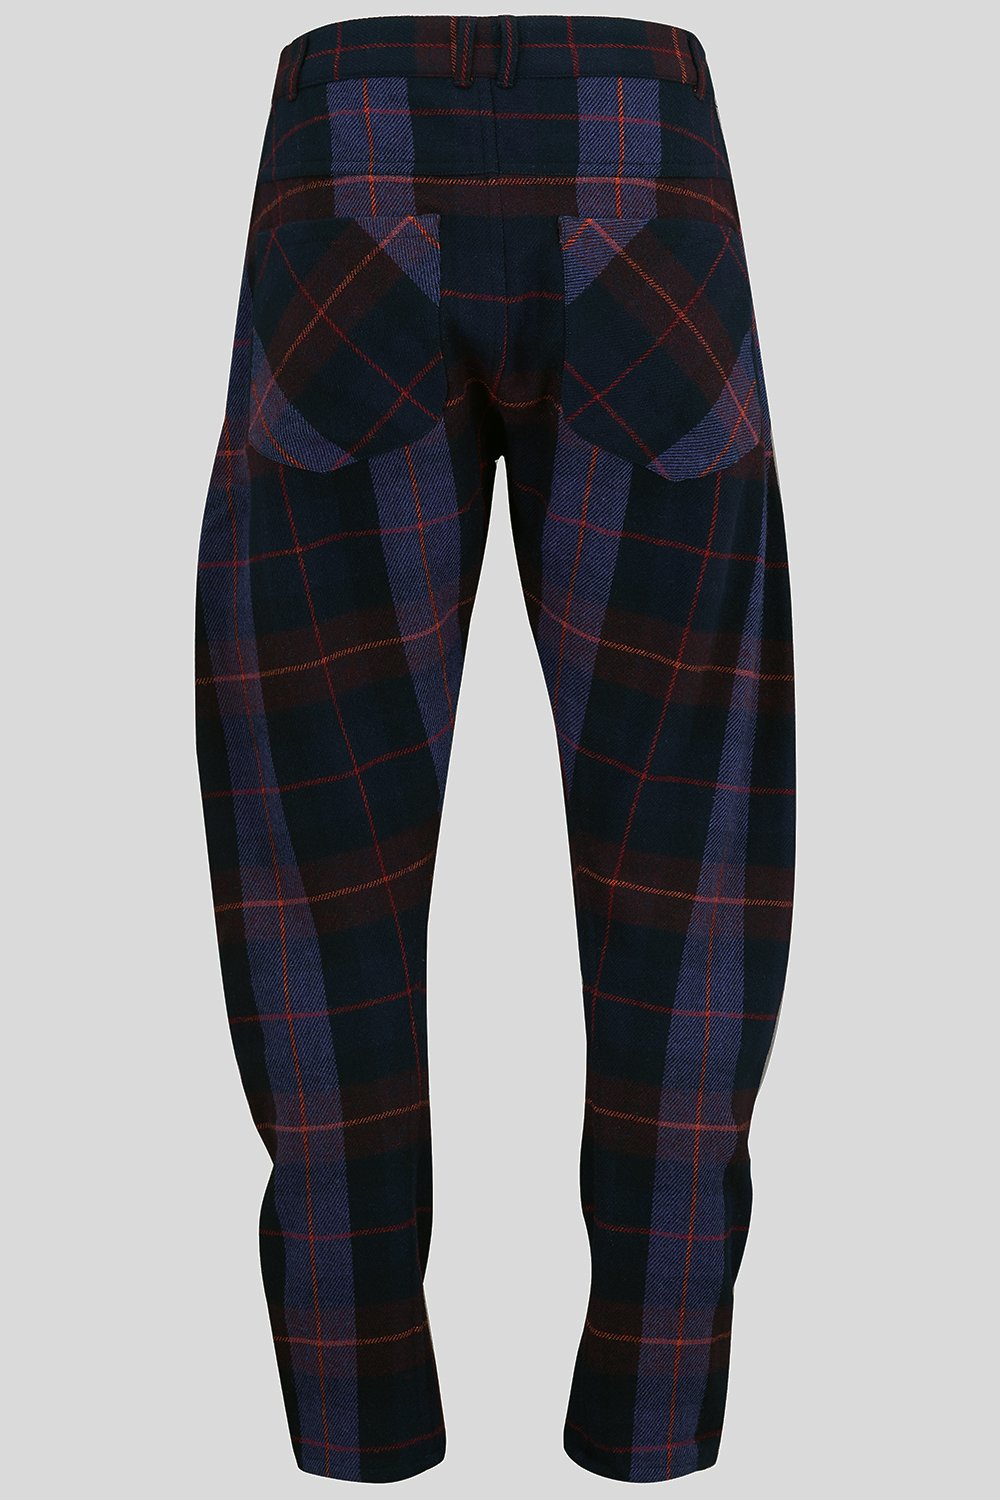 APACHE TROUSERS IN PURPLE CHECK-menswear-A Child Of The Jago